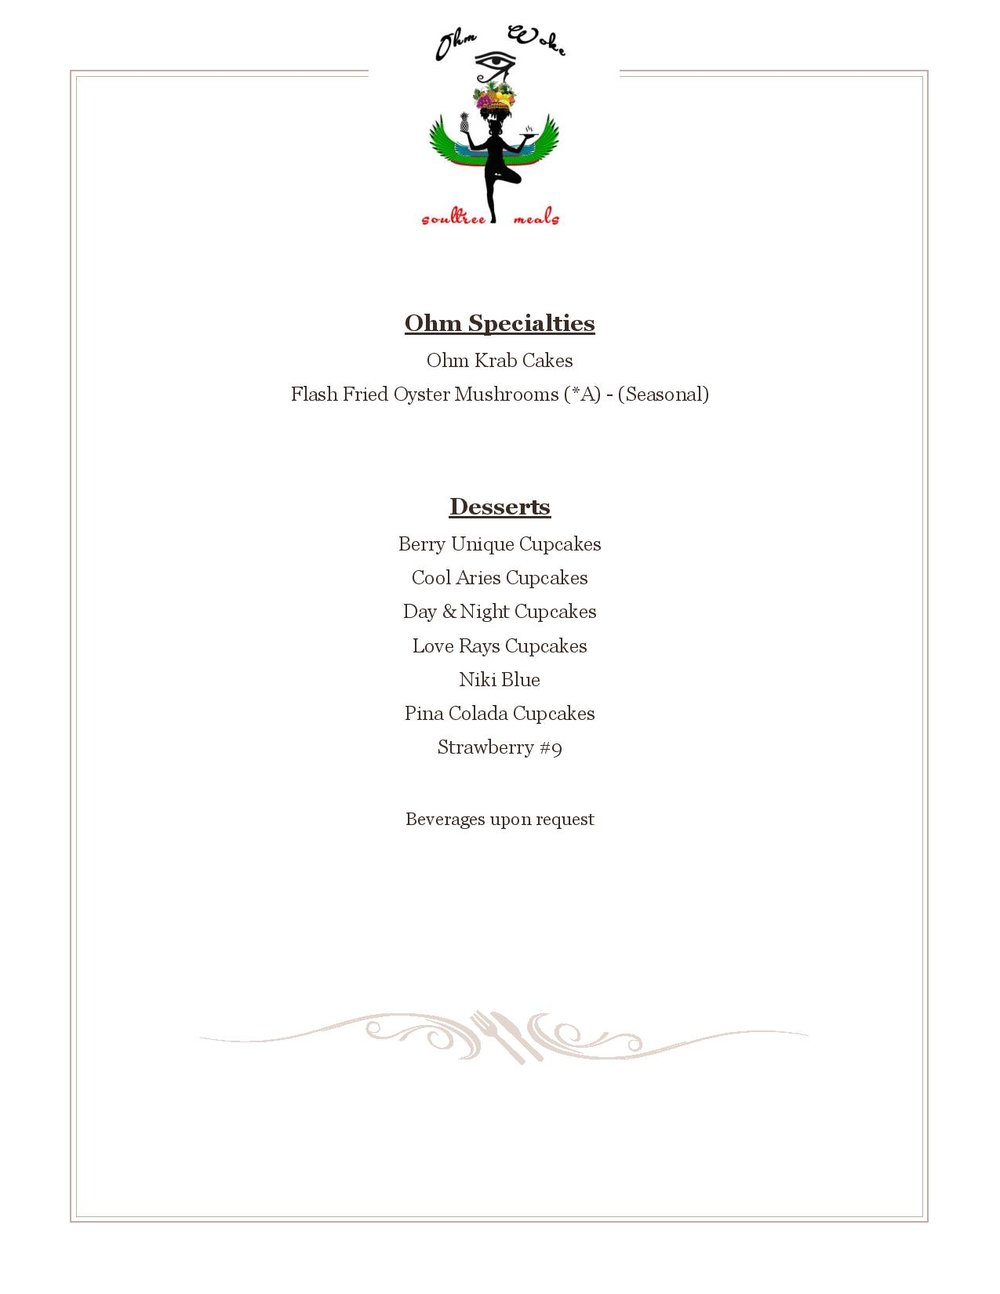 OHM CATERING4 Menu-page-004.jpg